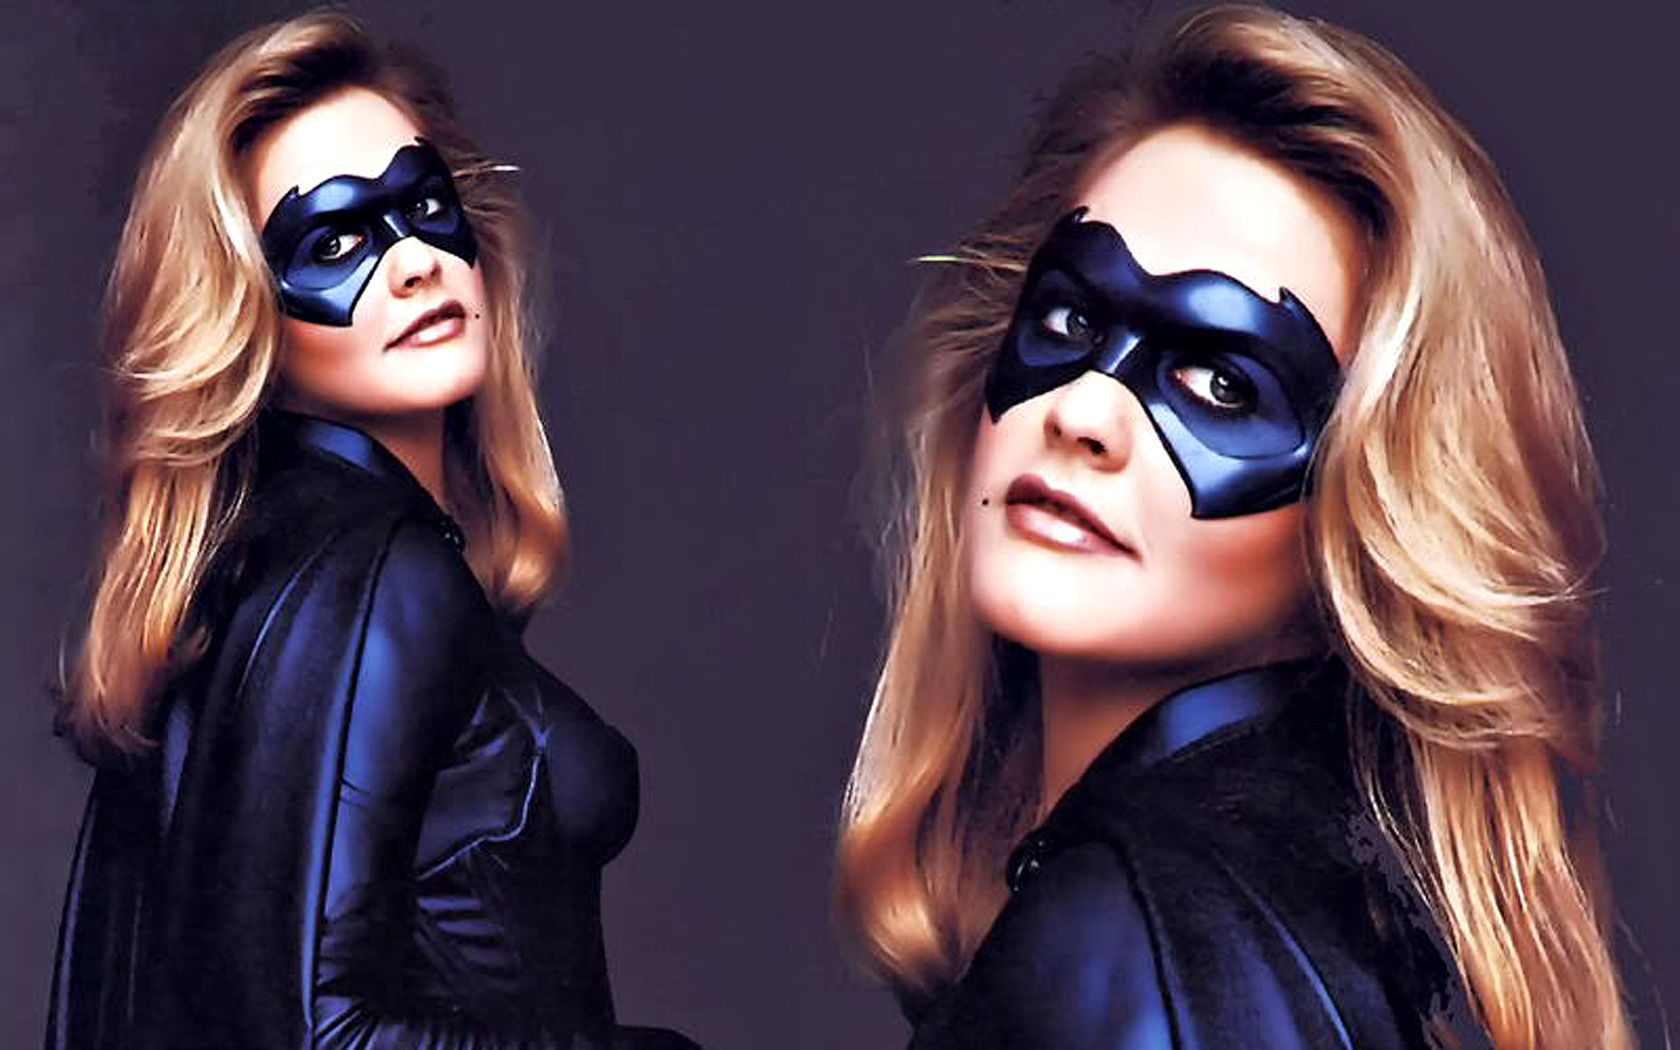 http://www.batmanwallpapers.com/wp-content/uploads/wallpapers/alicia_silverstone_a_batgirl_wallpaper_-_1680x1050.jpg